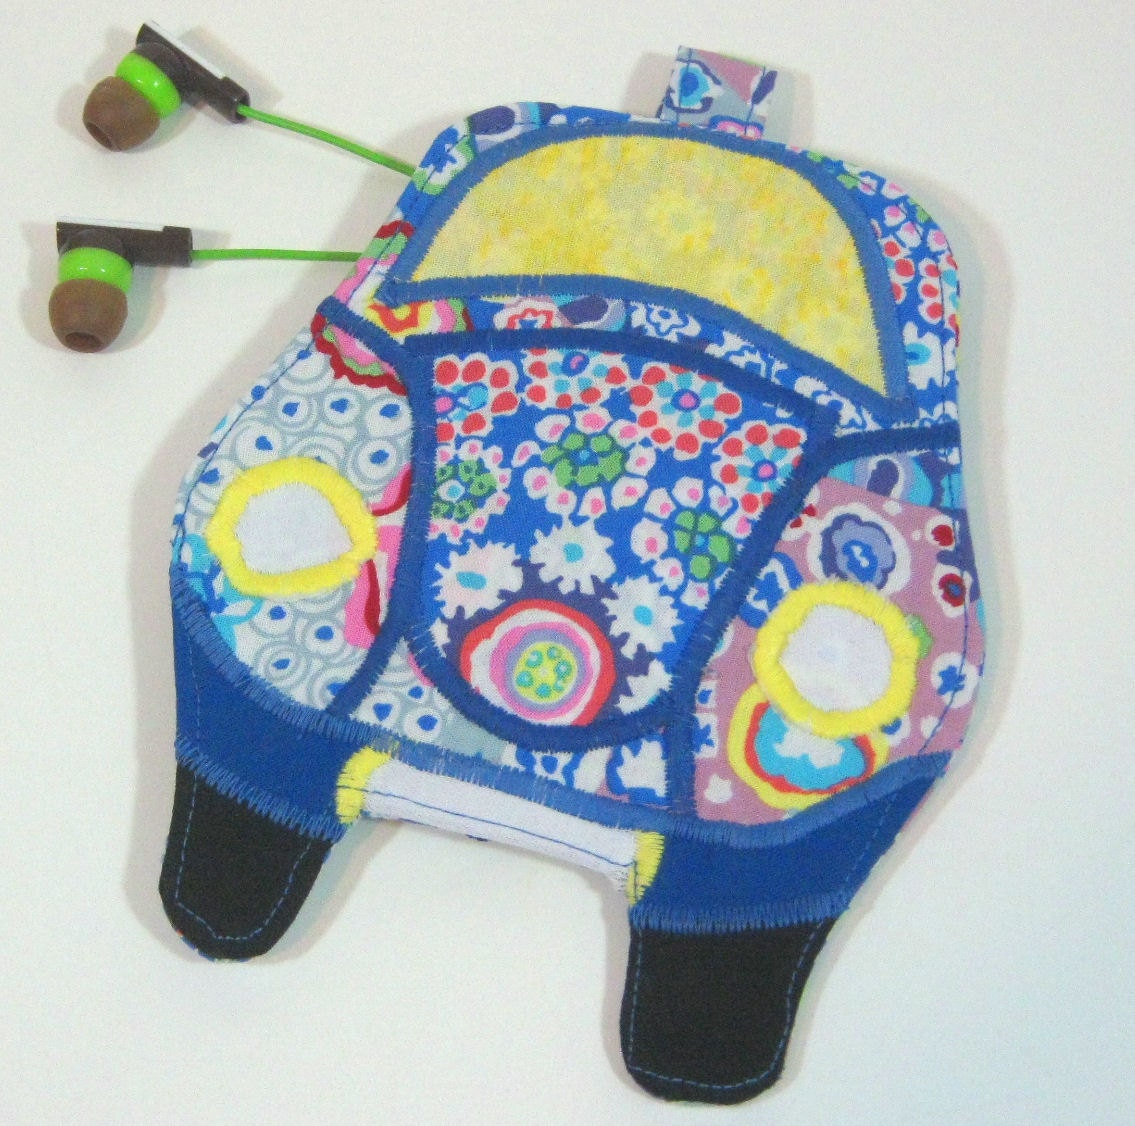 VW Beetle Bug Coin Purse, Ear Bud/ Earphone Pouch,  Binky Bag-- Appliqued Zipper Pouch- Psychedelic Blue